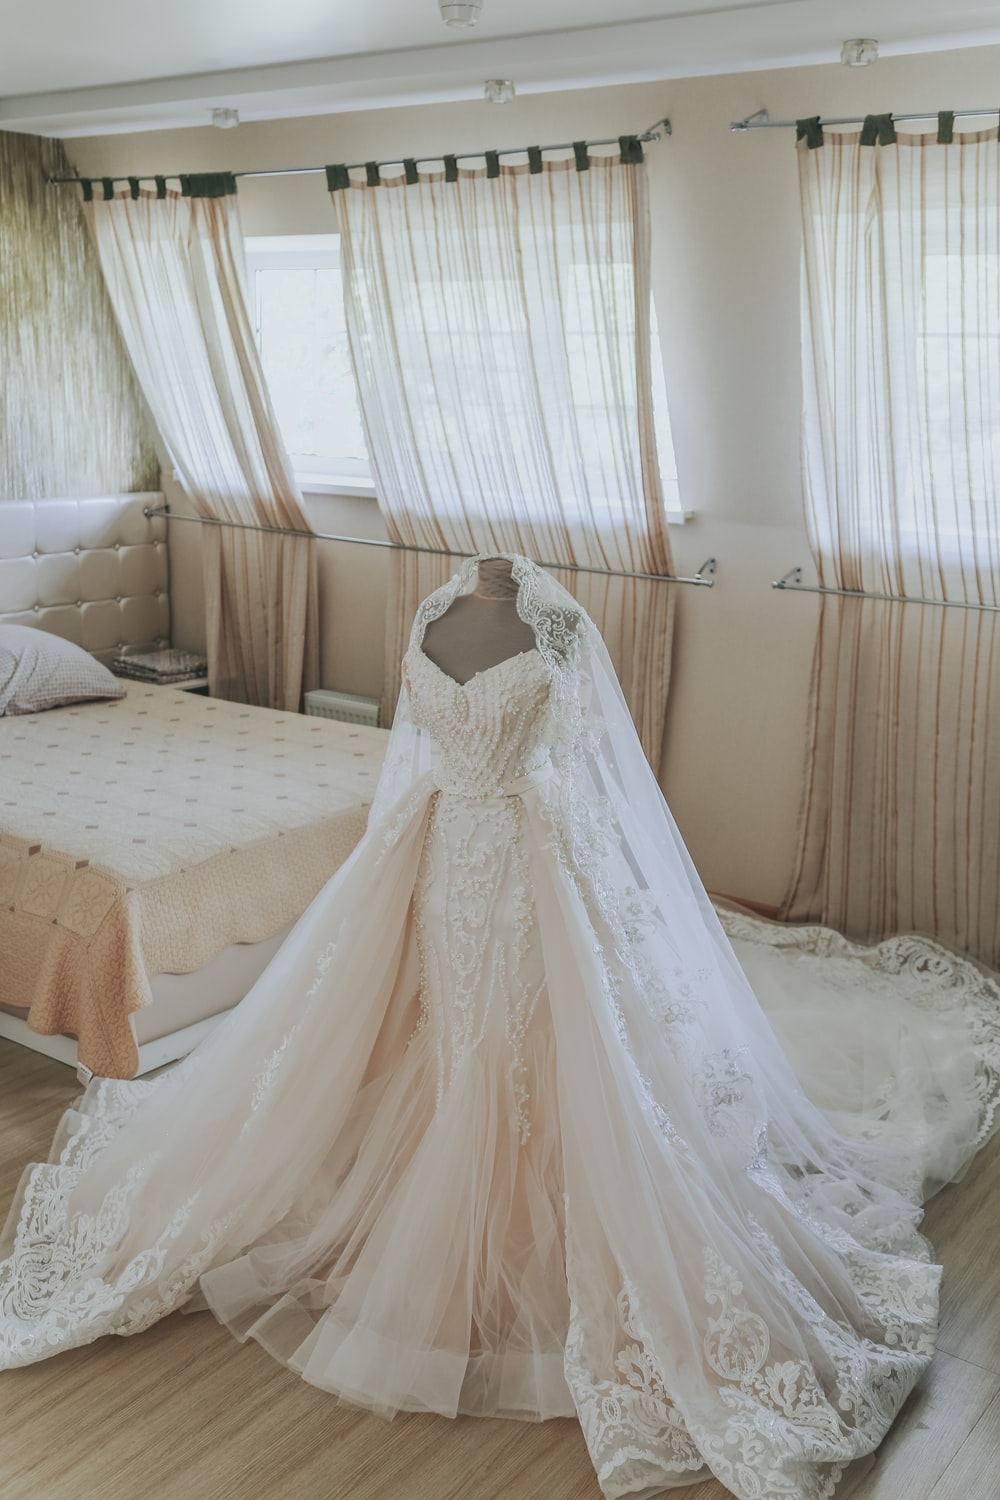 white wedding gown on bed